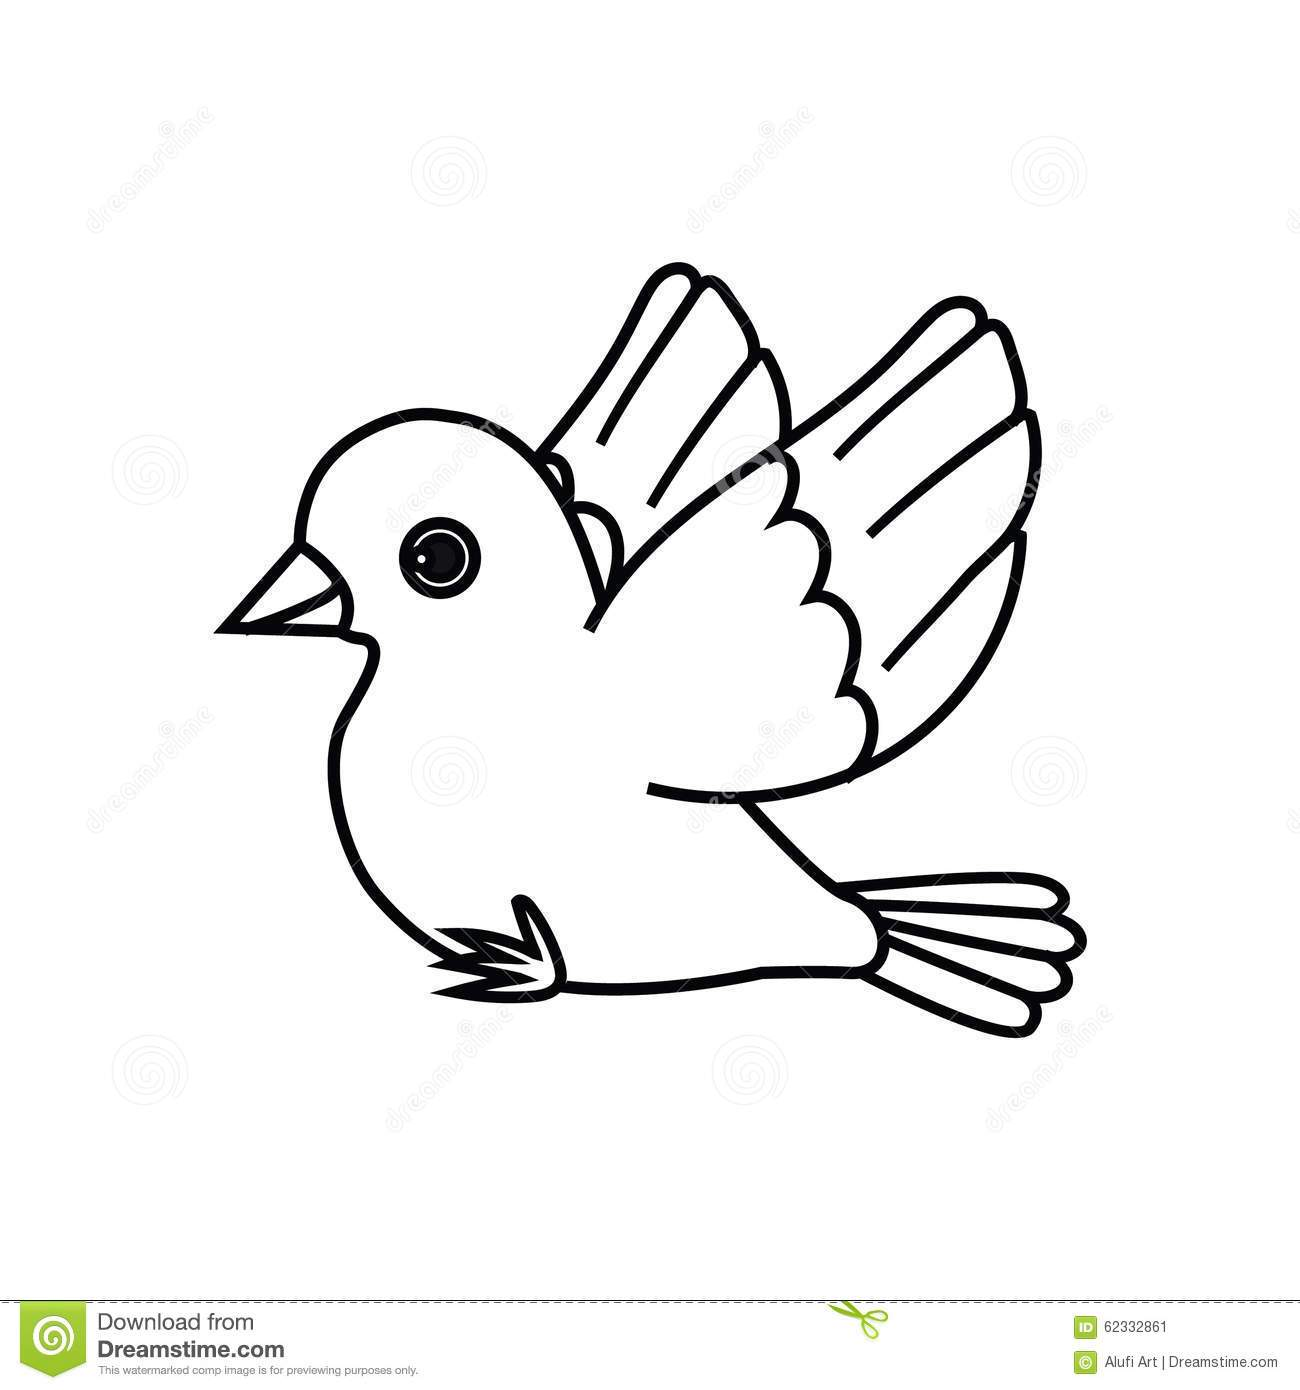 Bird outline clipart 1 » Clipart Portal.